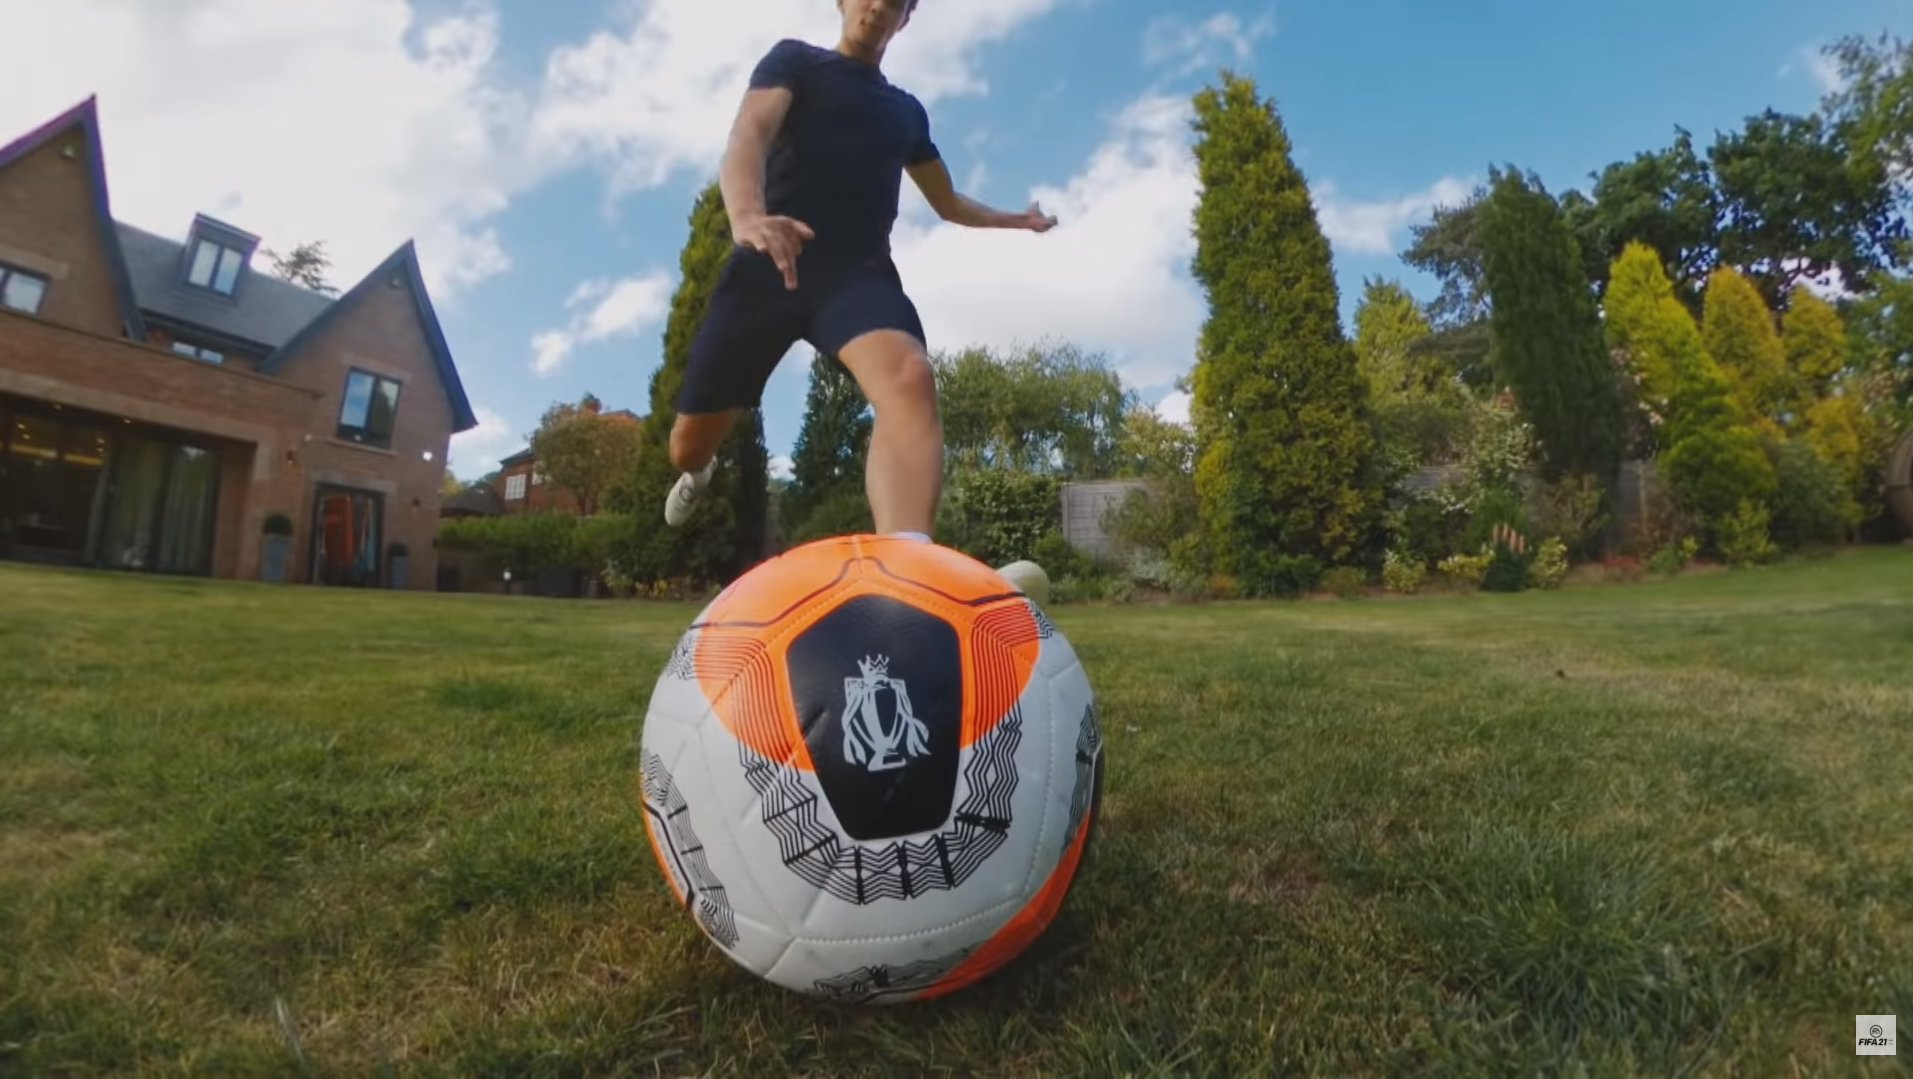 Trent Alexander-Arnold kicks a ball in the FIFA 21 reveal trailer.